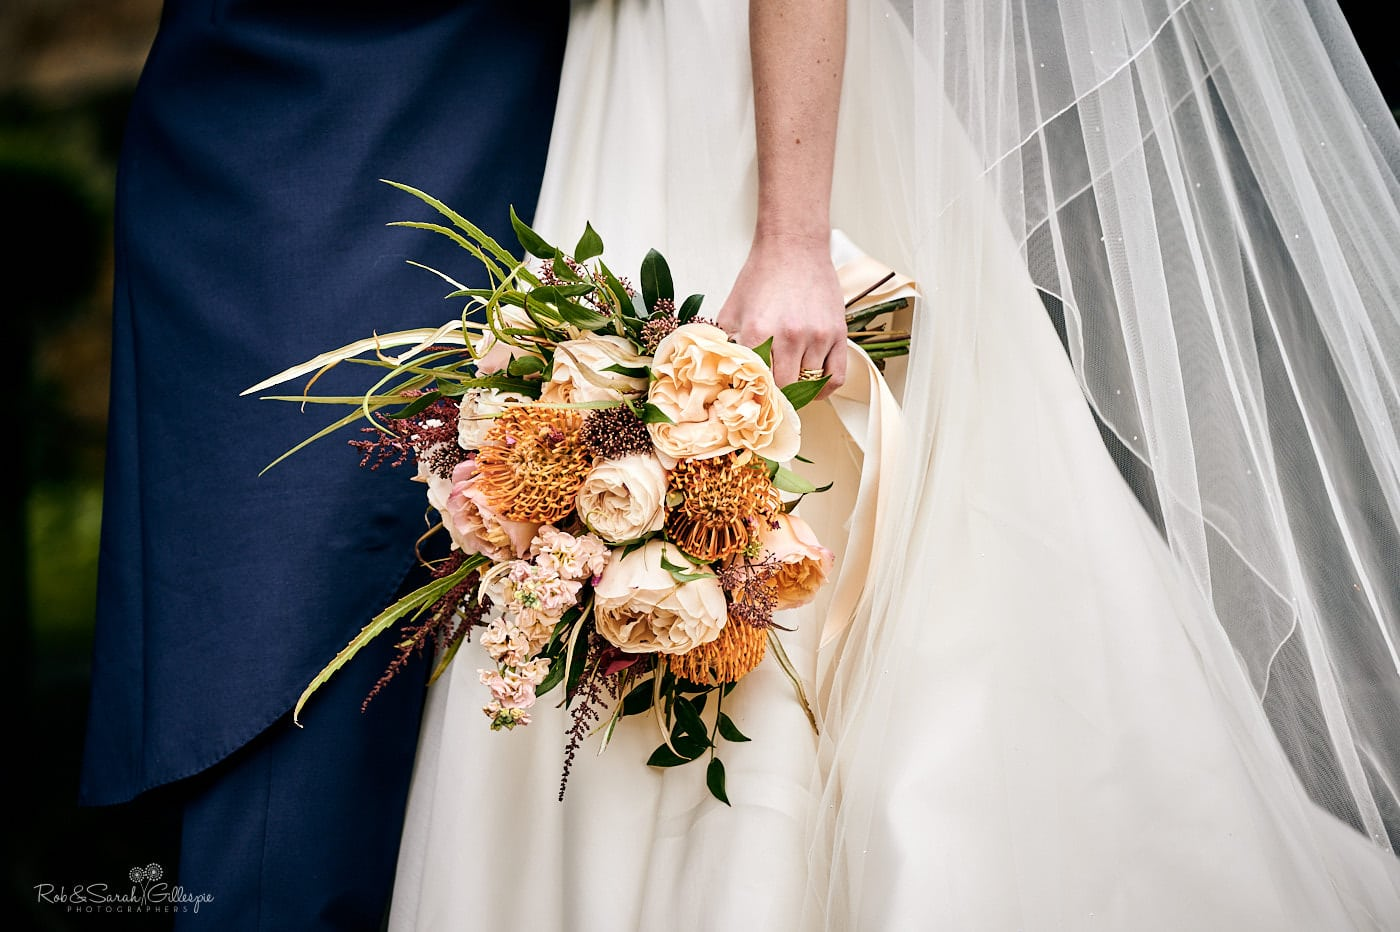 Close up of bride's bouquet and wedding dress